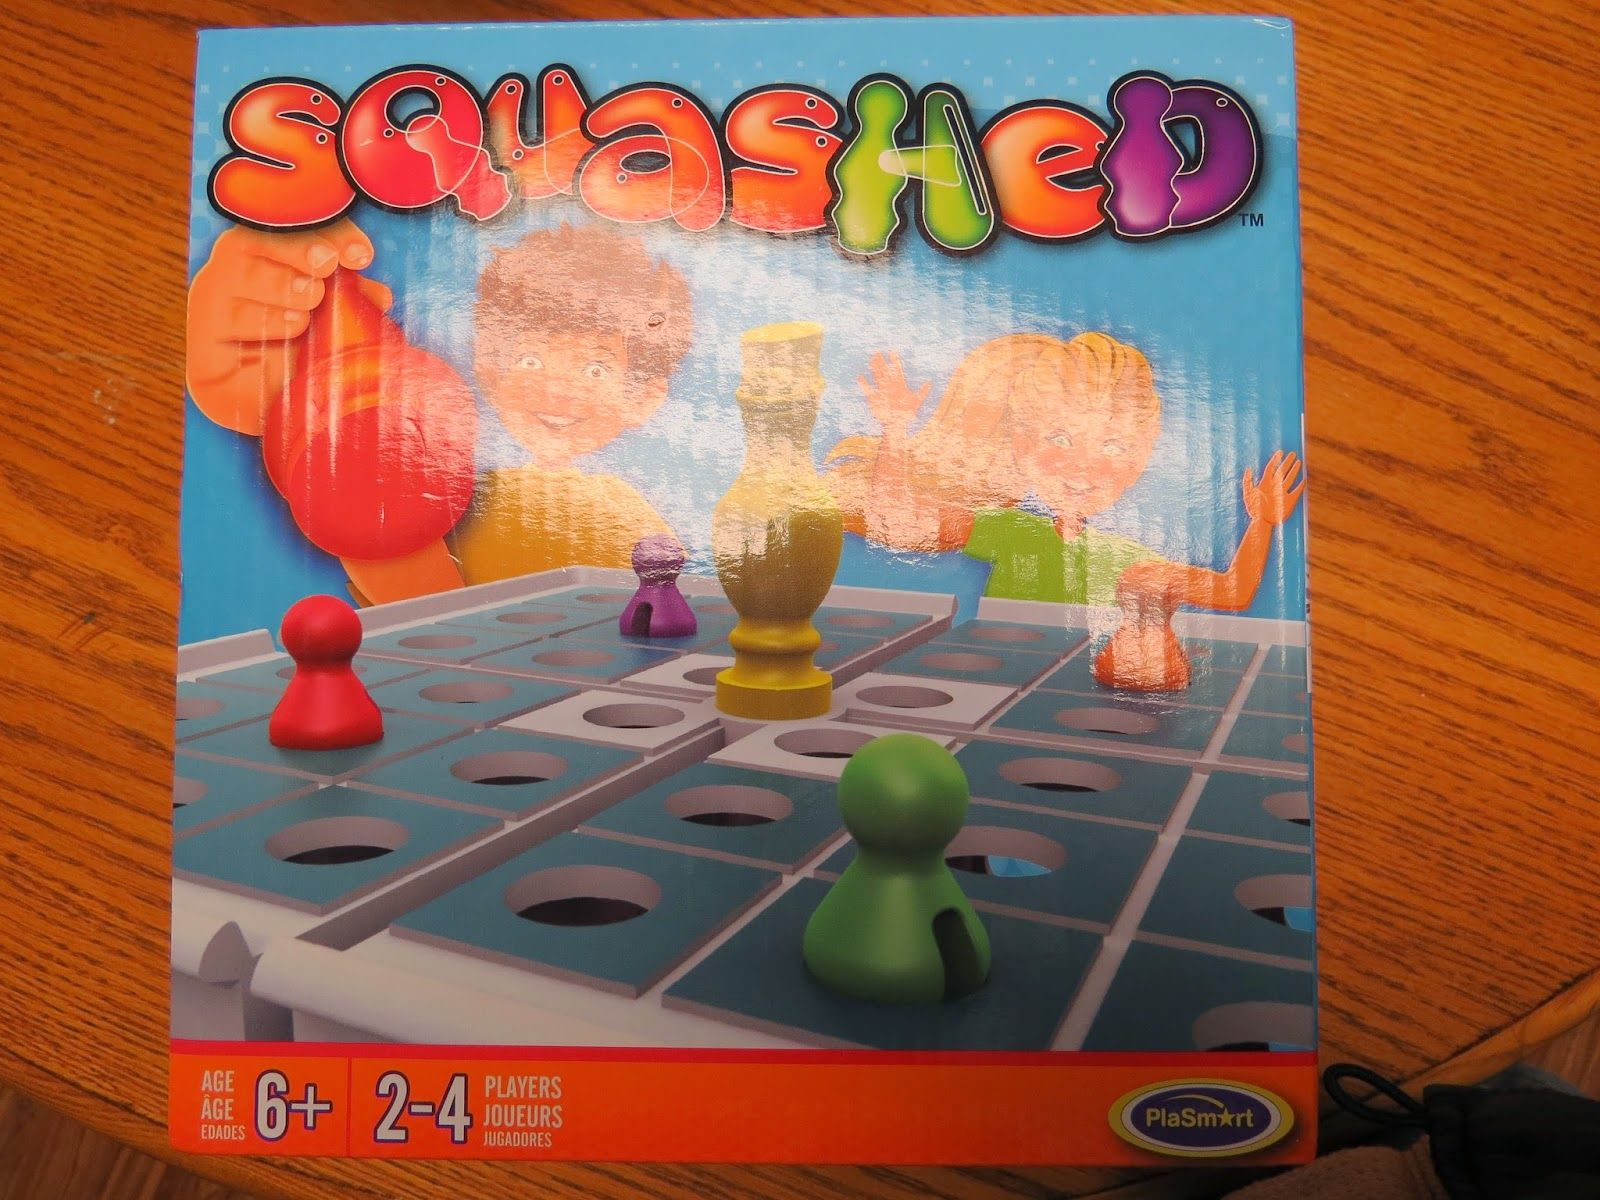 http://dealsandfree.blogspot.ca/2014/11/gift-guide-have-fun-playing-squashed.html